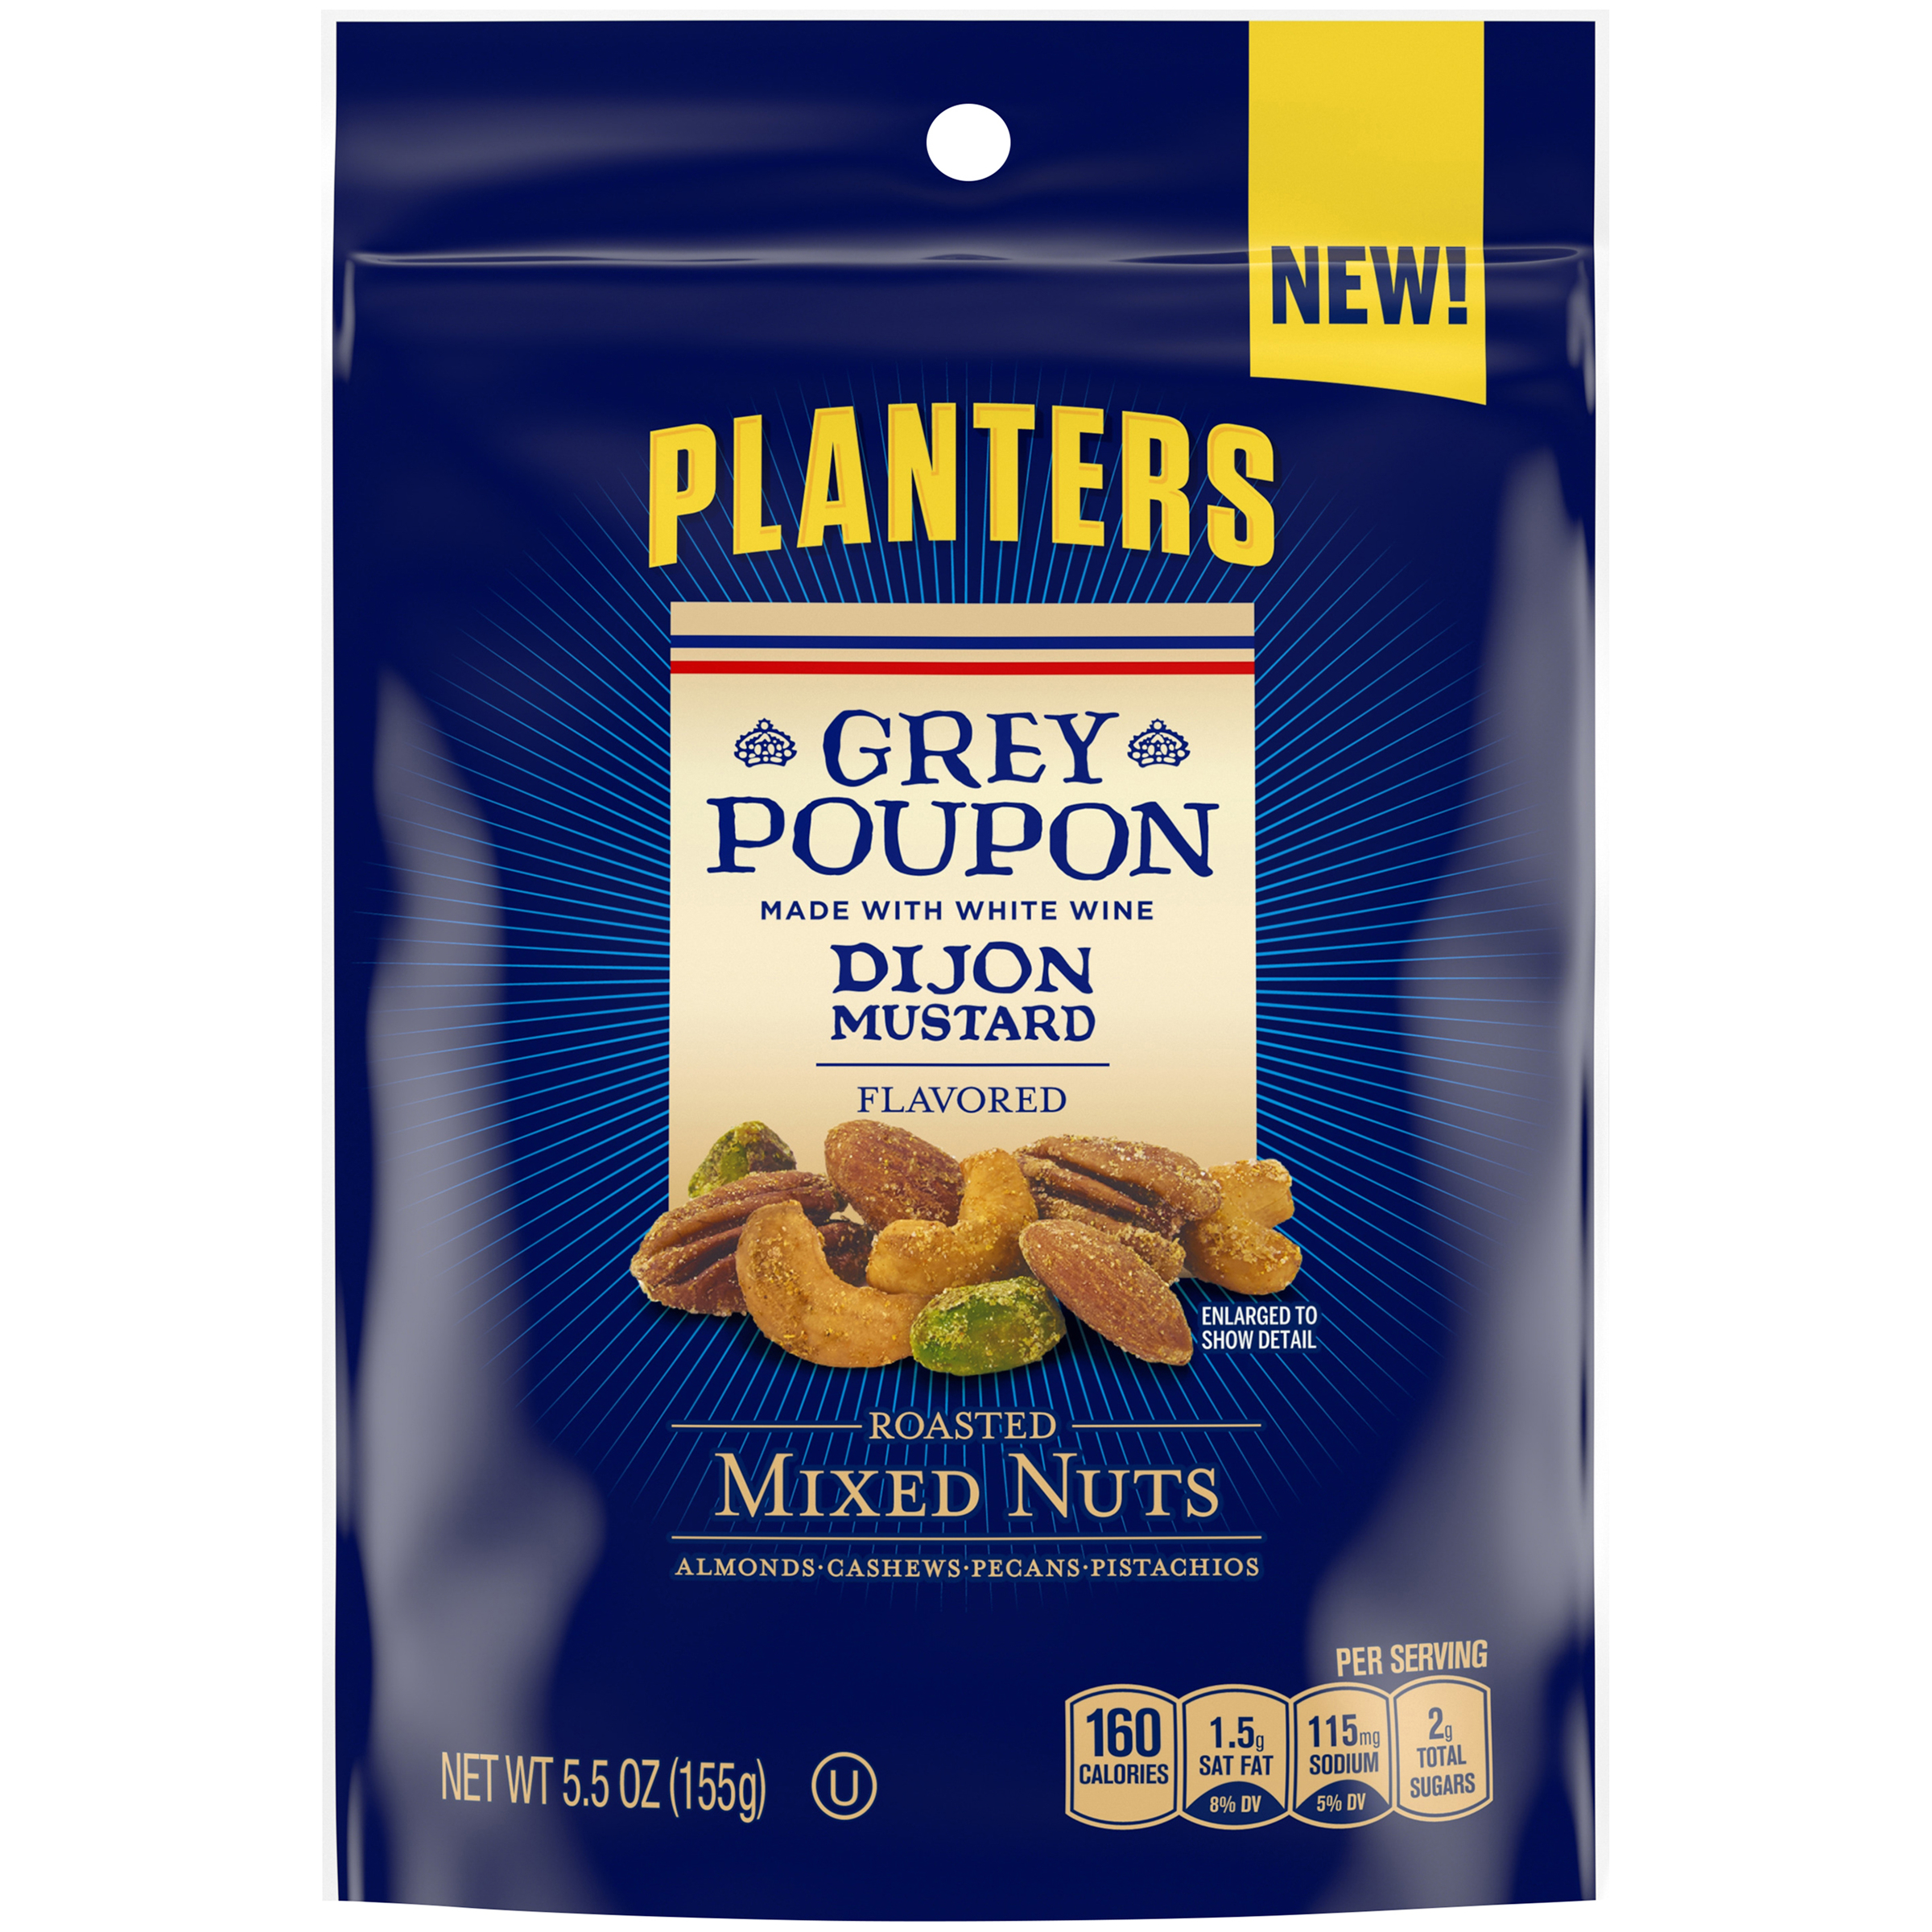 Planters Grey Poupon Sauce Flavored Roasted Mixed Nuts, 5 oz Bag